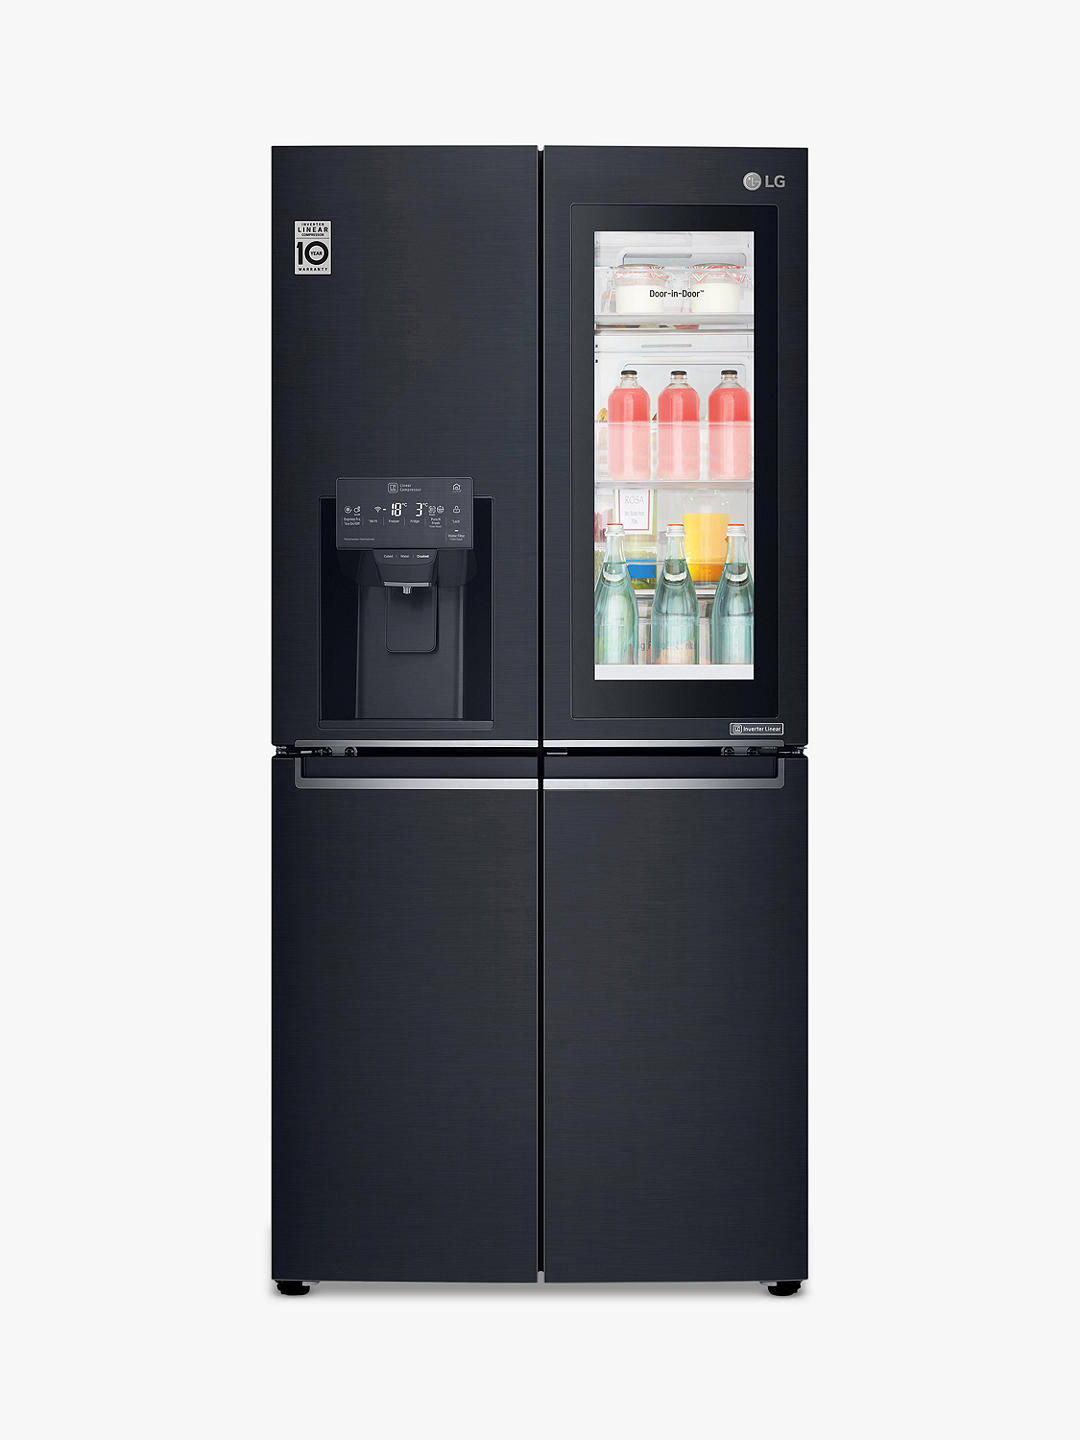 Buy LG GMX844MCKV Freestanding 60/40 Fridge Freezer, Black Online at johnlewis.com